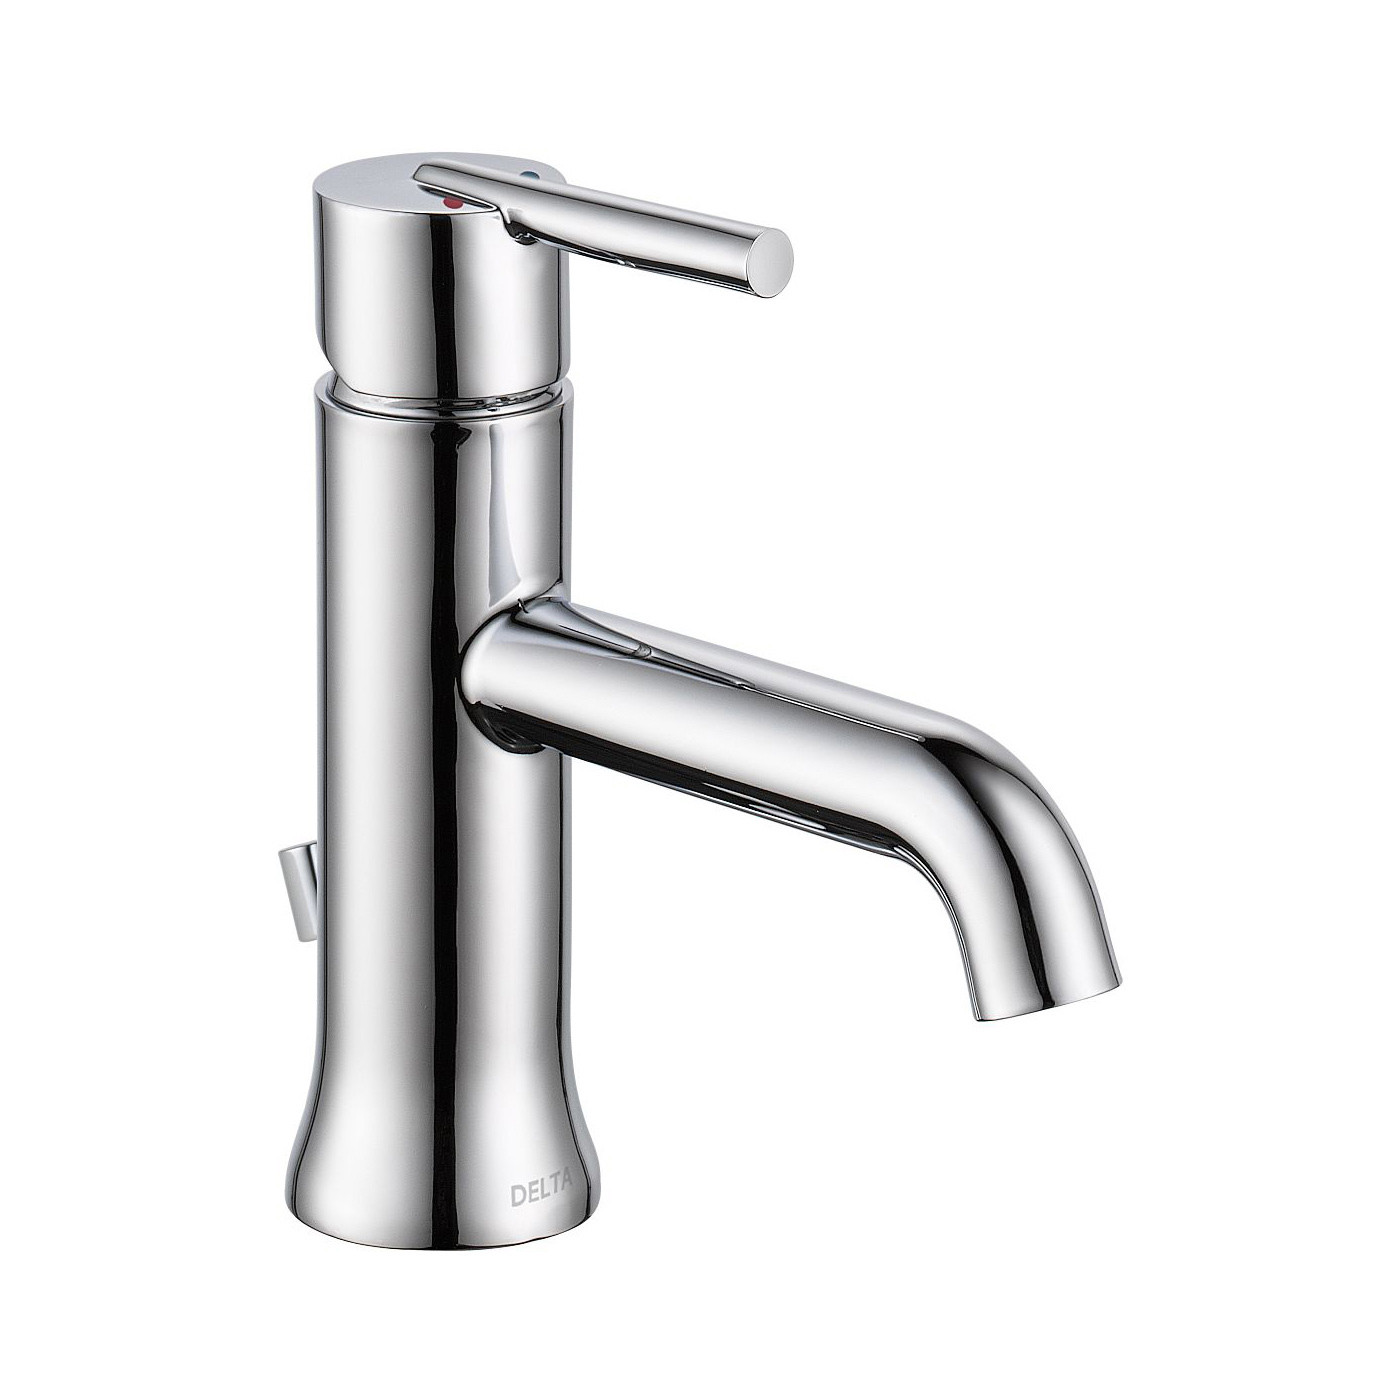 starlight wall faucet in allure of bathroom sink grohe handle gpm faucets grandera single mount hole